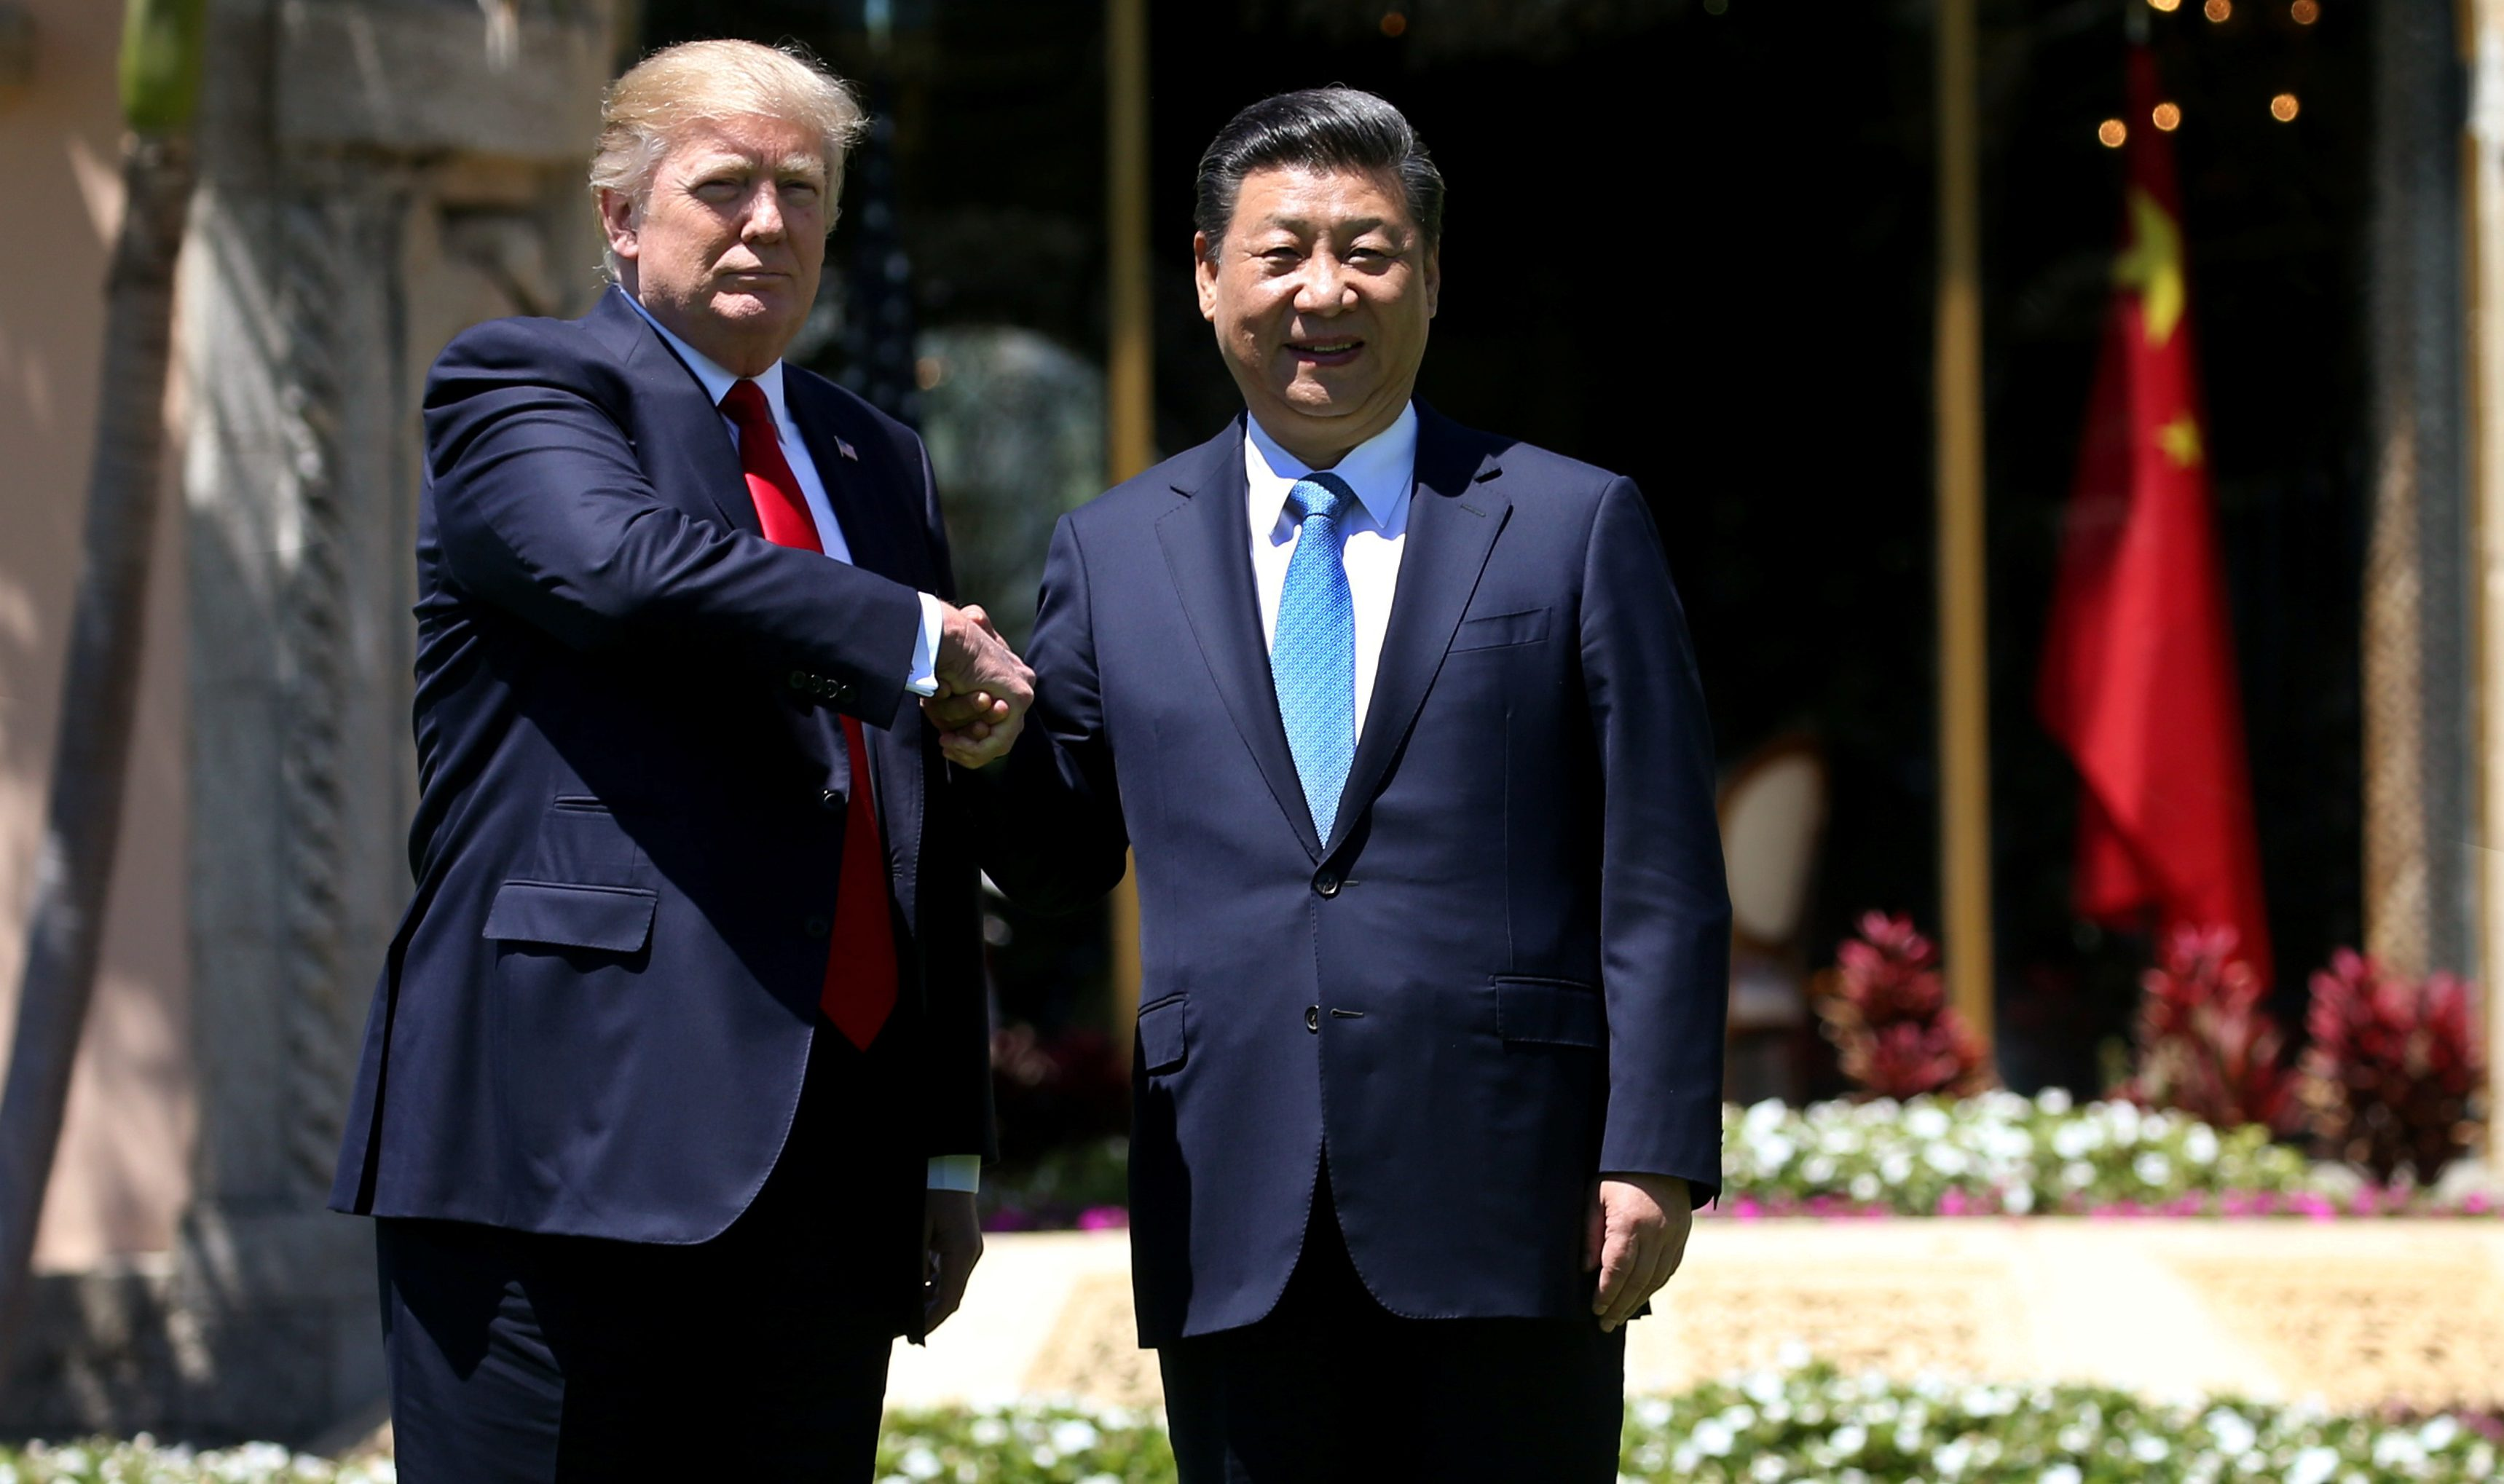 U.S. President Donald Trump (L) and China's President Xi Jinping shake hands while walking at Mar-a-Lago estate after a bilateral meeting in Palm Beach, Florida, U.S., April 7, 2017. REUTERS/Carlos Barria - RTX34MII